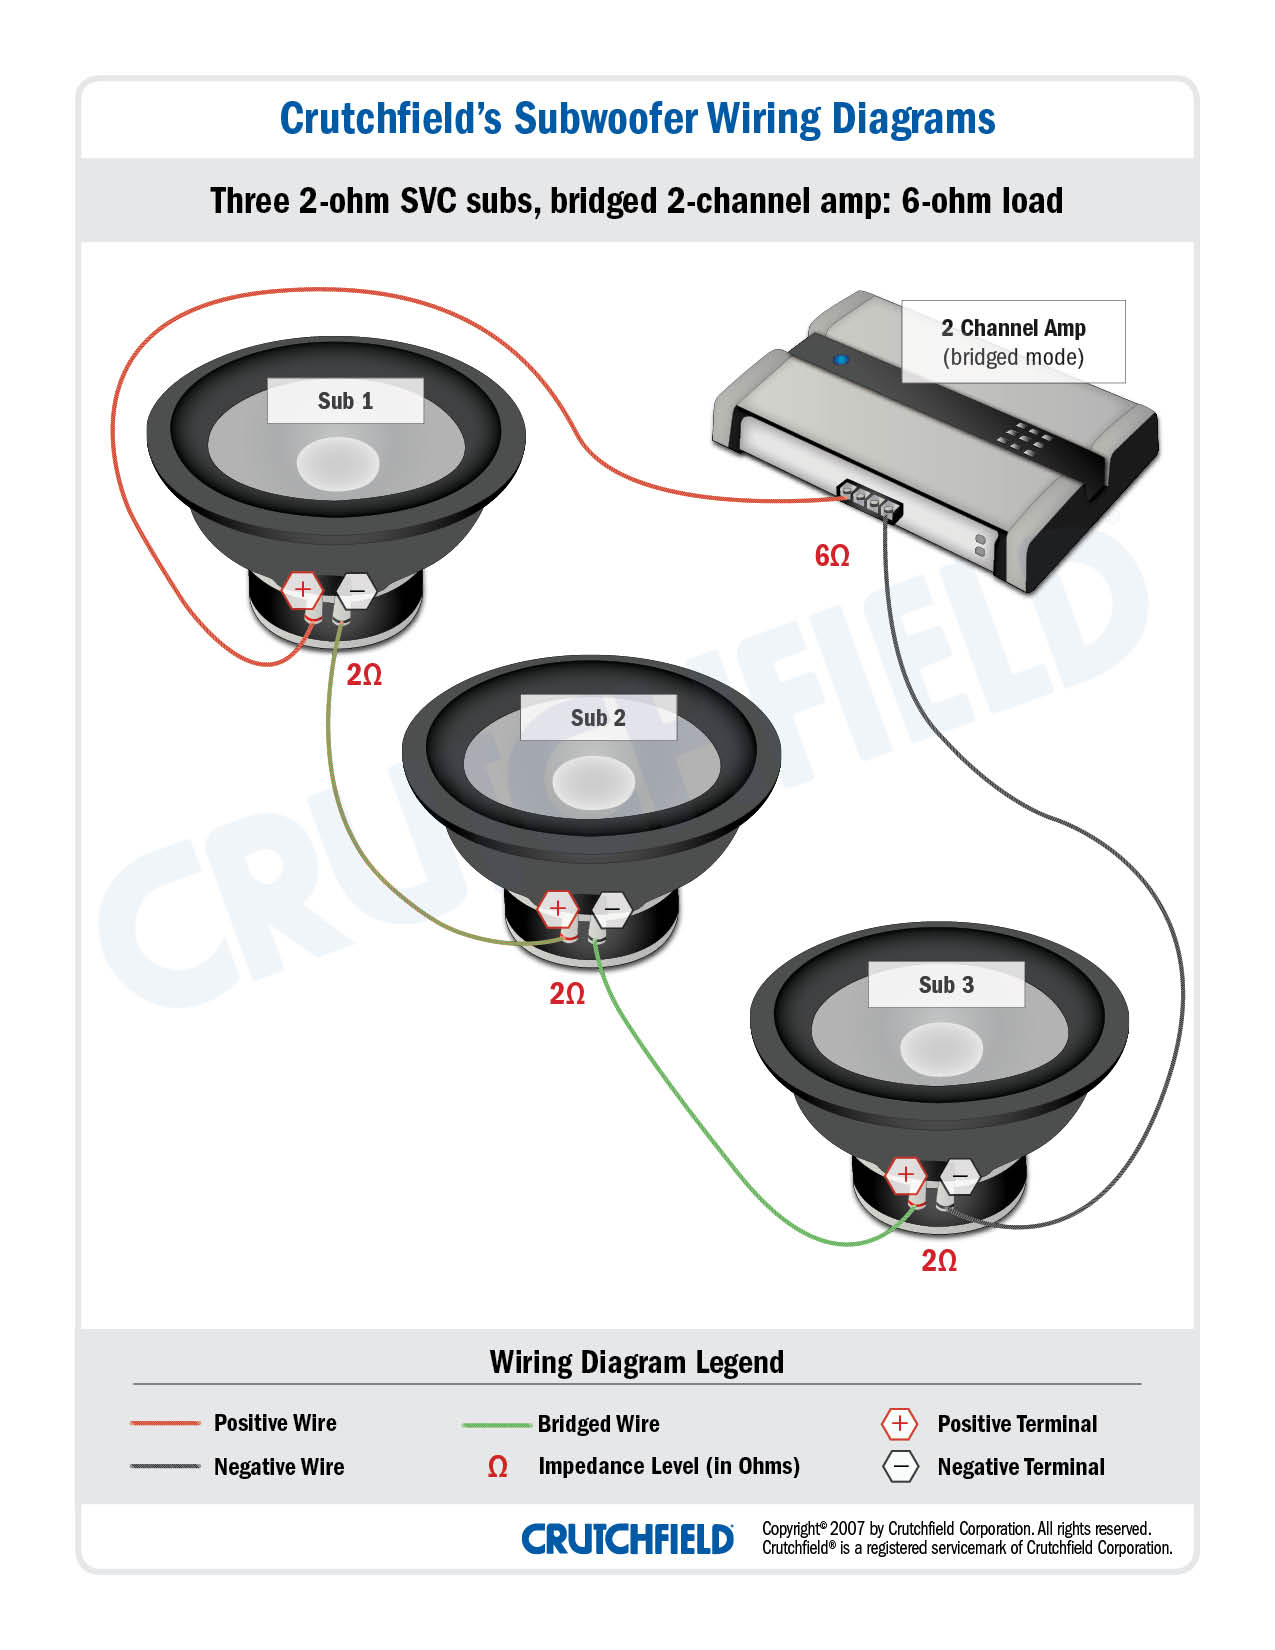 subwoofer wiring diagrams rh crutchfield com car subwoofer amp wiring diagram car subwoofer amp wiring diagram